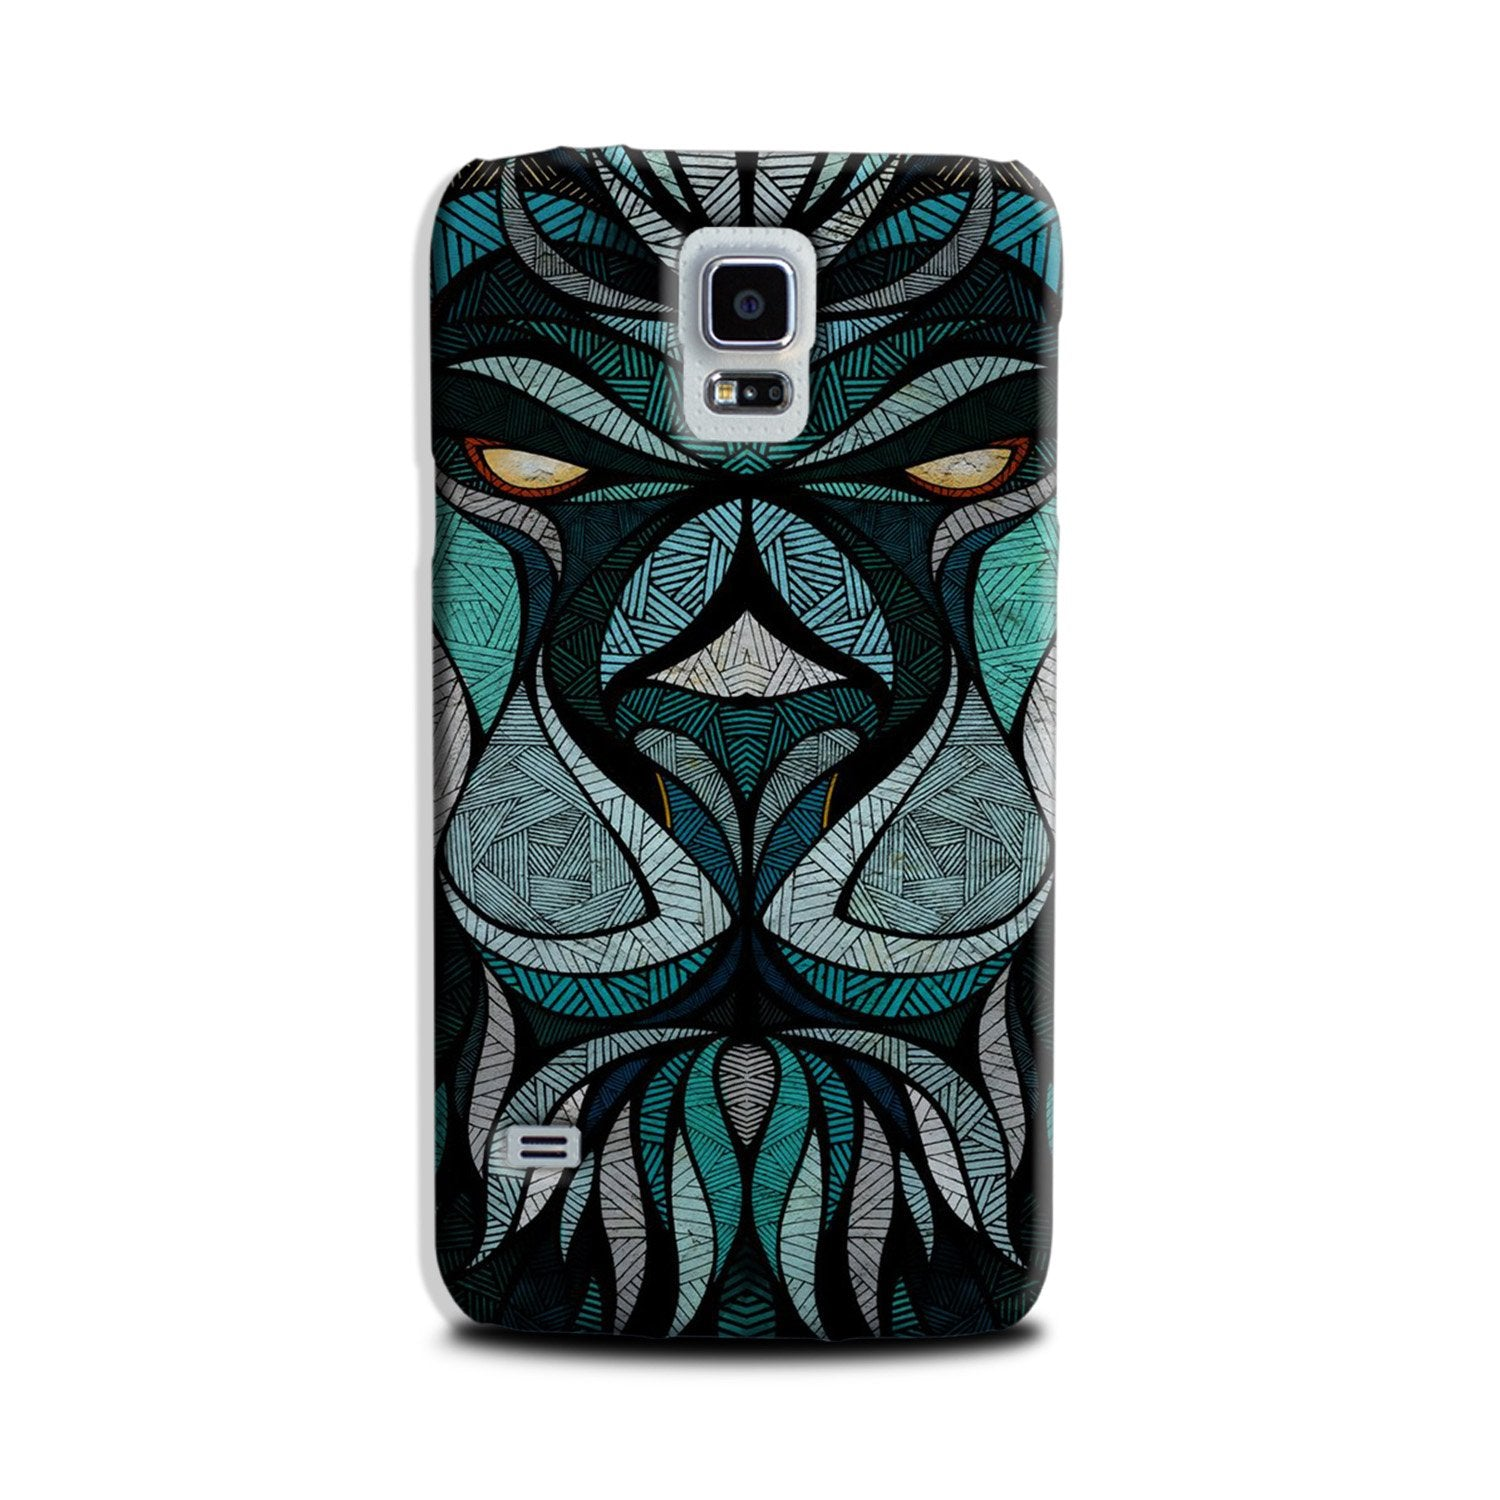 Lion Case for Galaxy S5